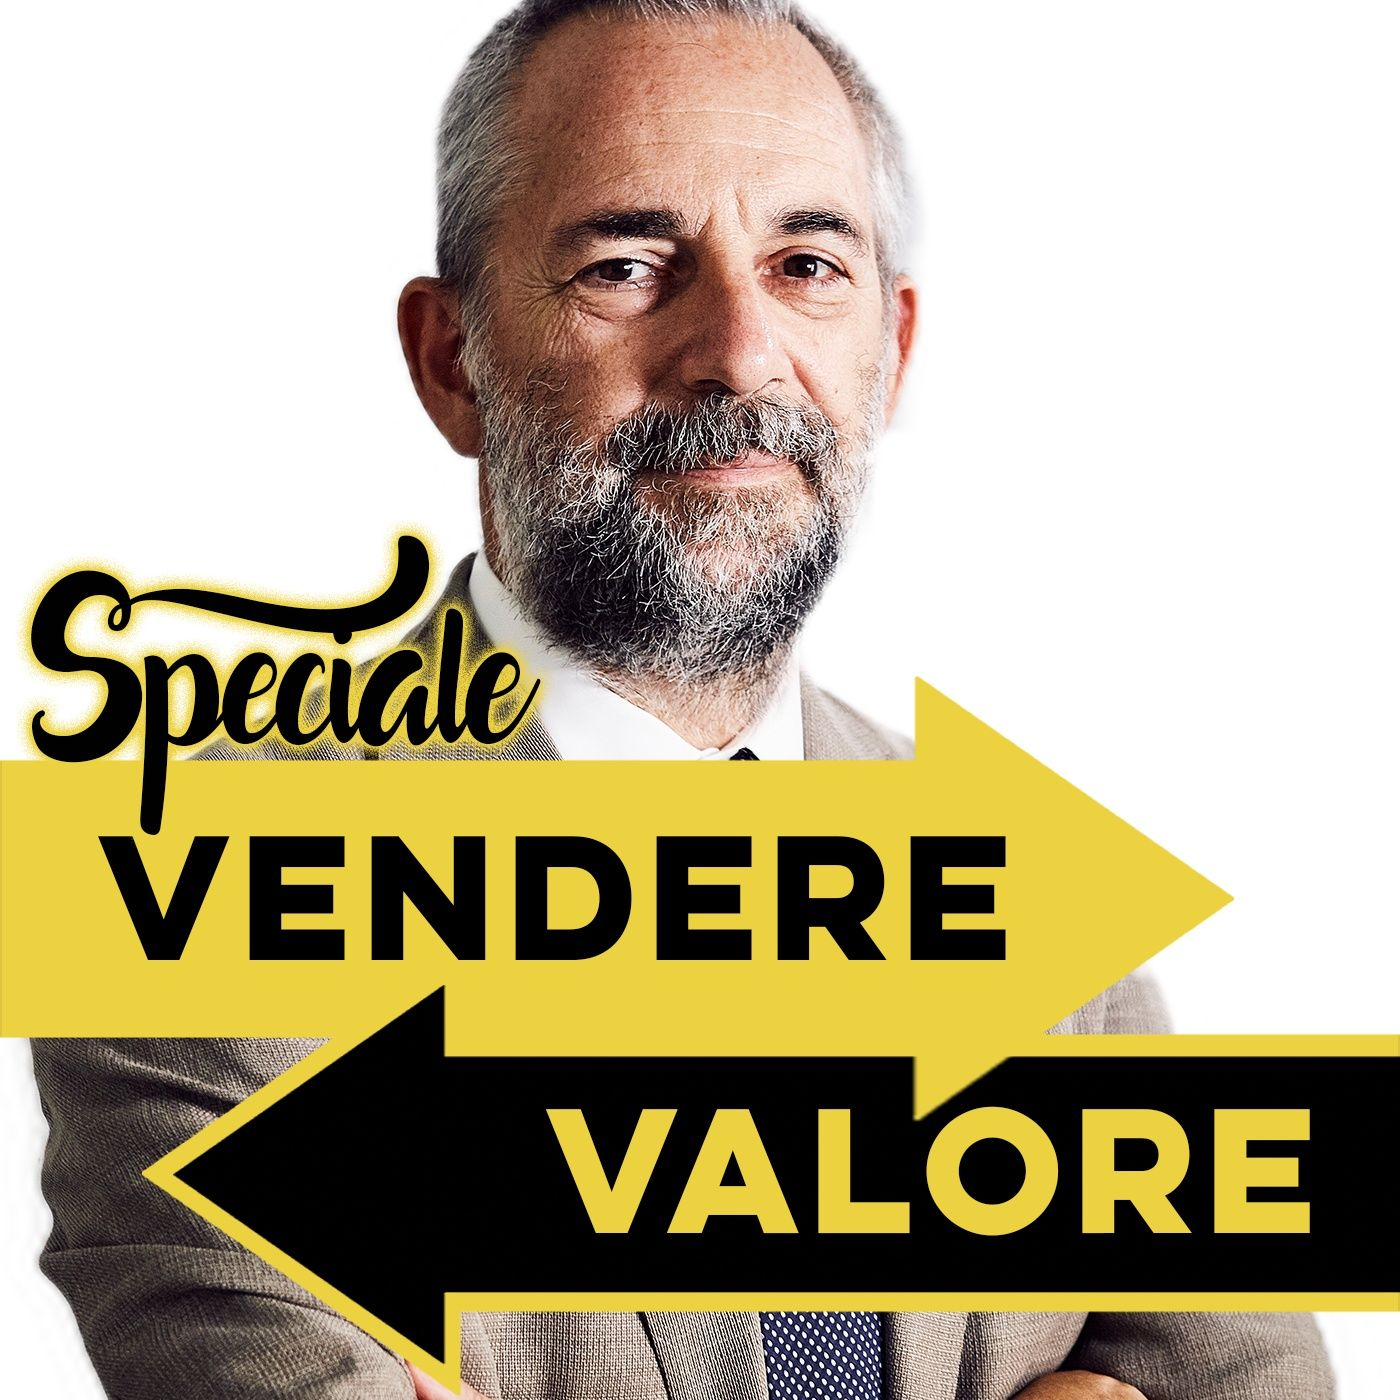 Speciale Marketers (interviste a Losacco e Boin)